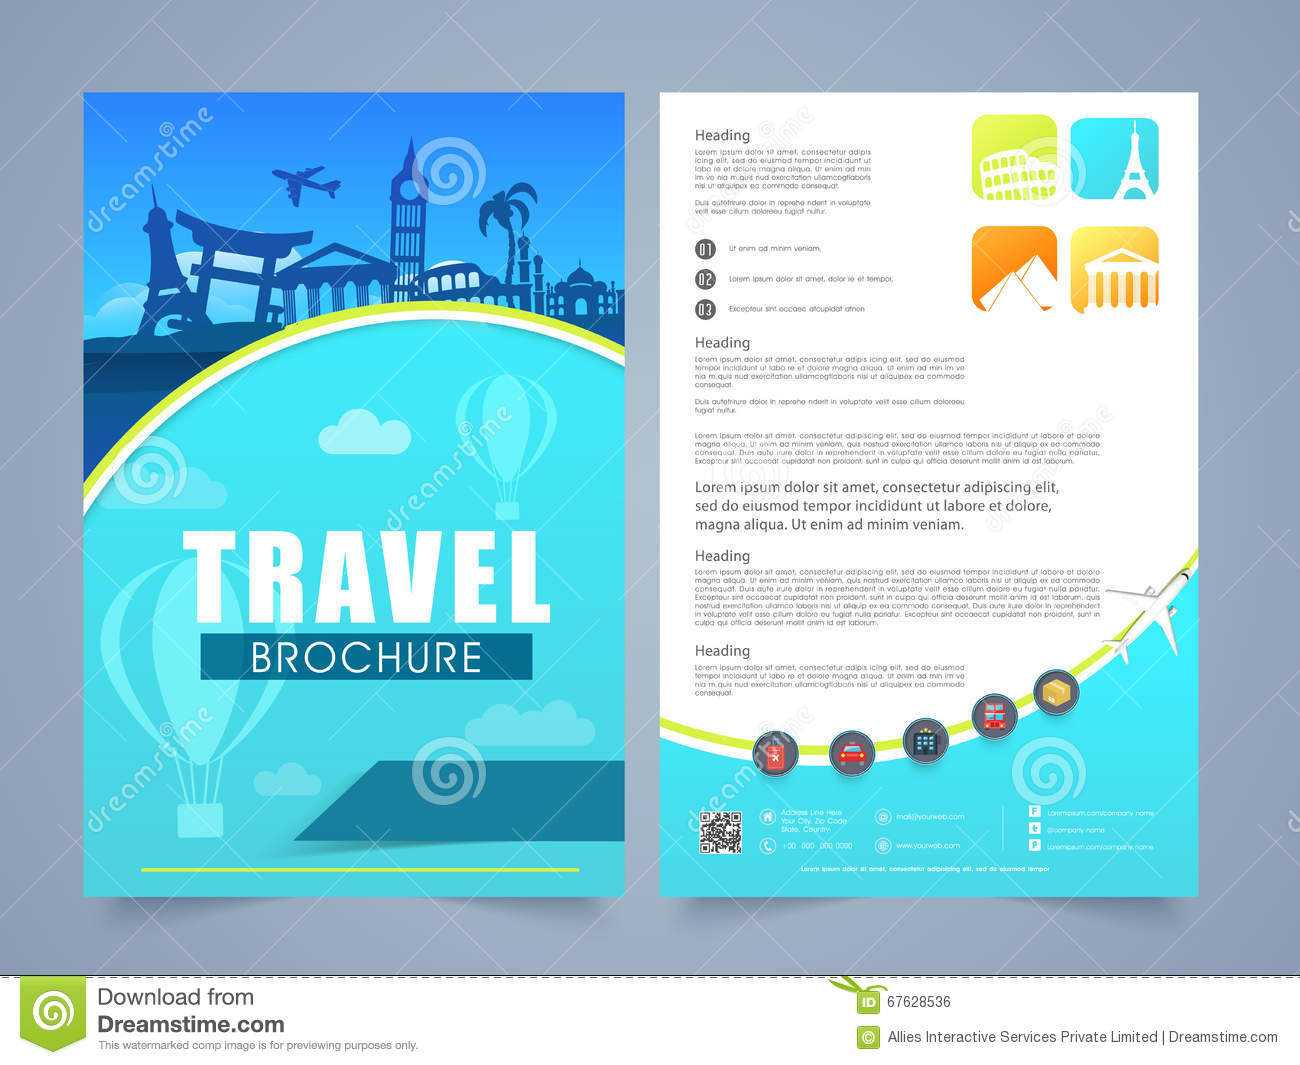 10 Example Of Travel Brochure | Business Letter Regarding Travel And Tourism Brochure Templates Free